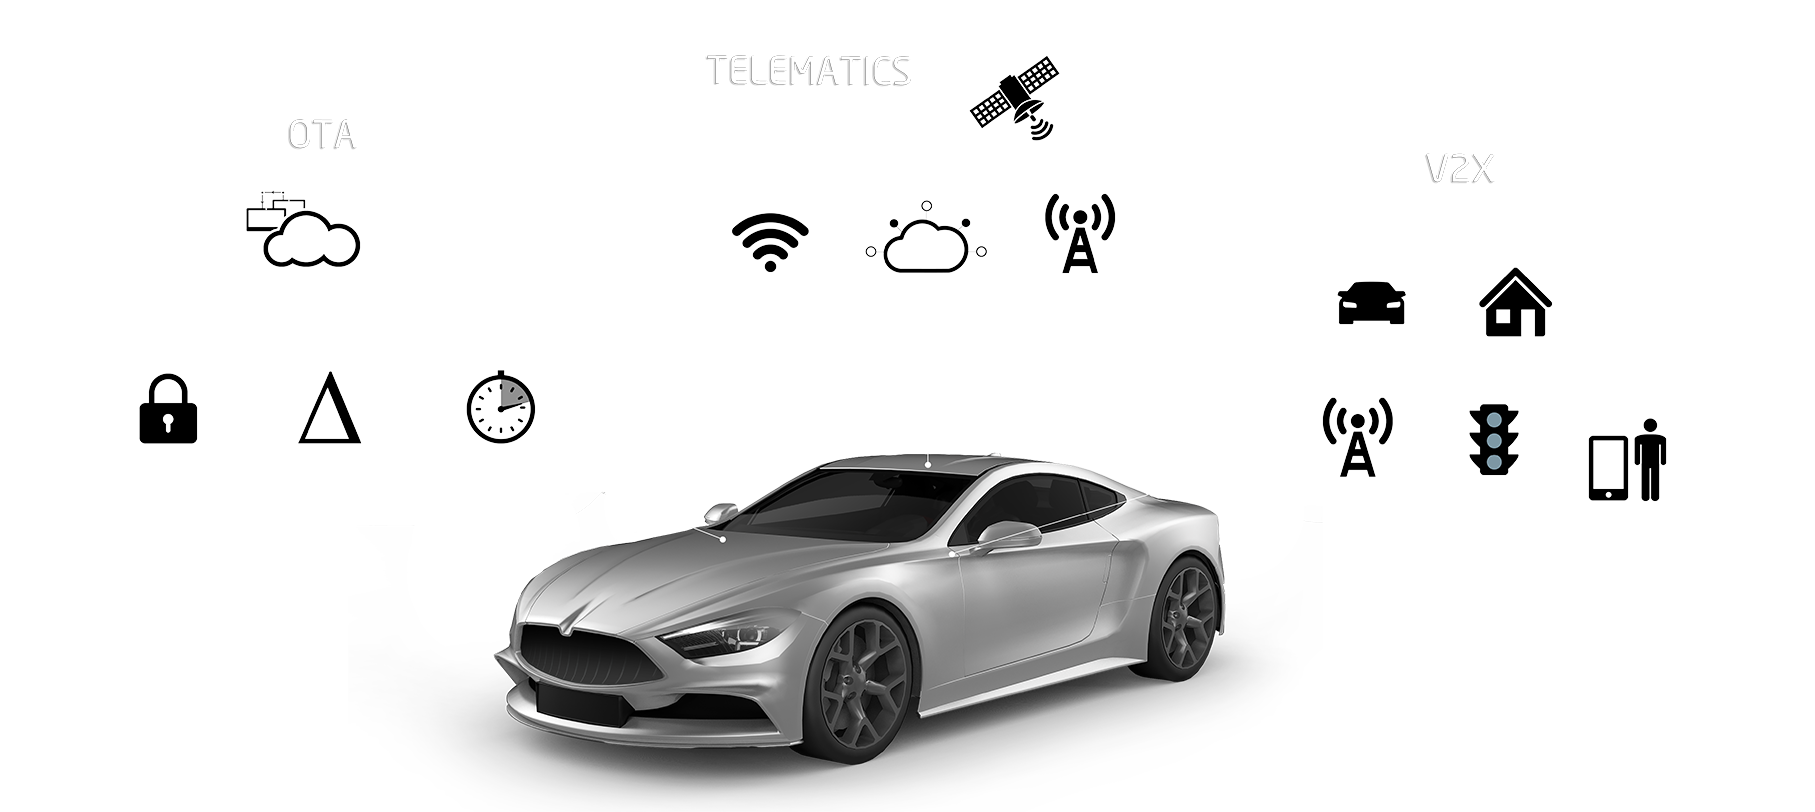 telematics-over-air-updates-vehicle-to-everything-rendering